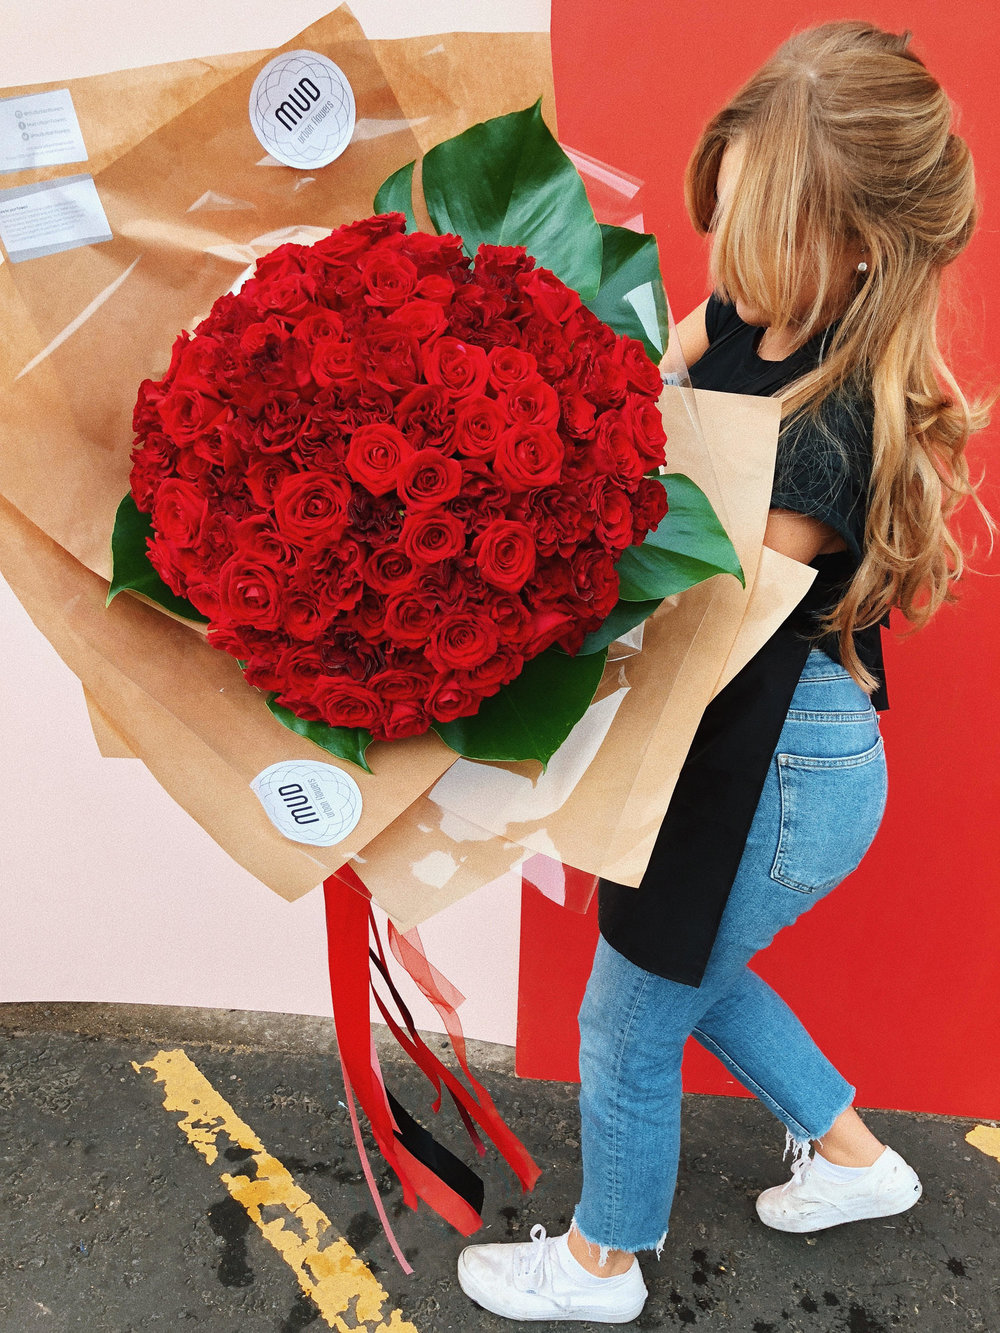 Q: Have you had a favourite bouquet? - A: I love working Scottish cut flowers, but in terms of memorable bouquet the 100 red rose bouquet I made earlier the year was a milestone for me.